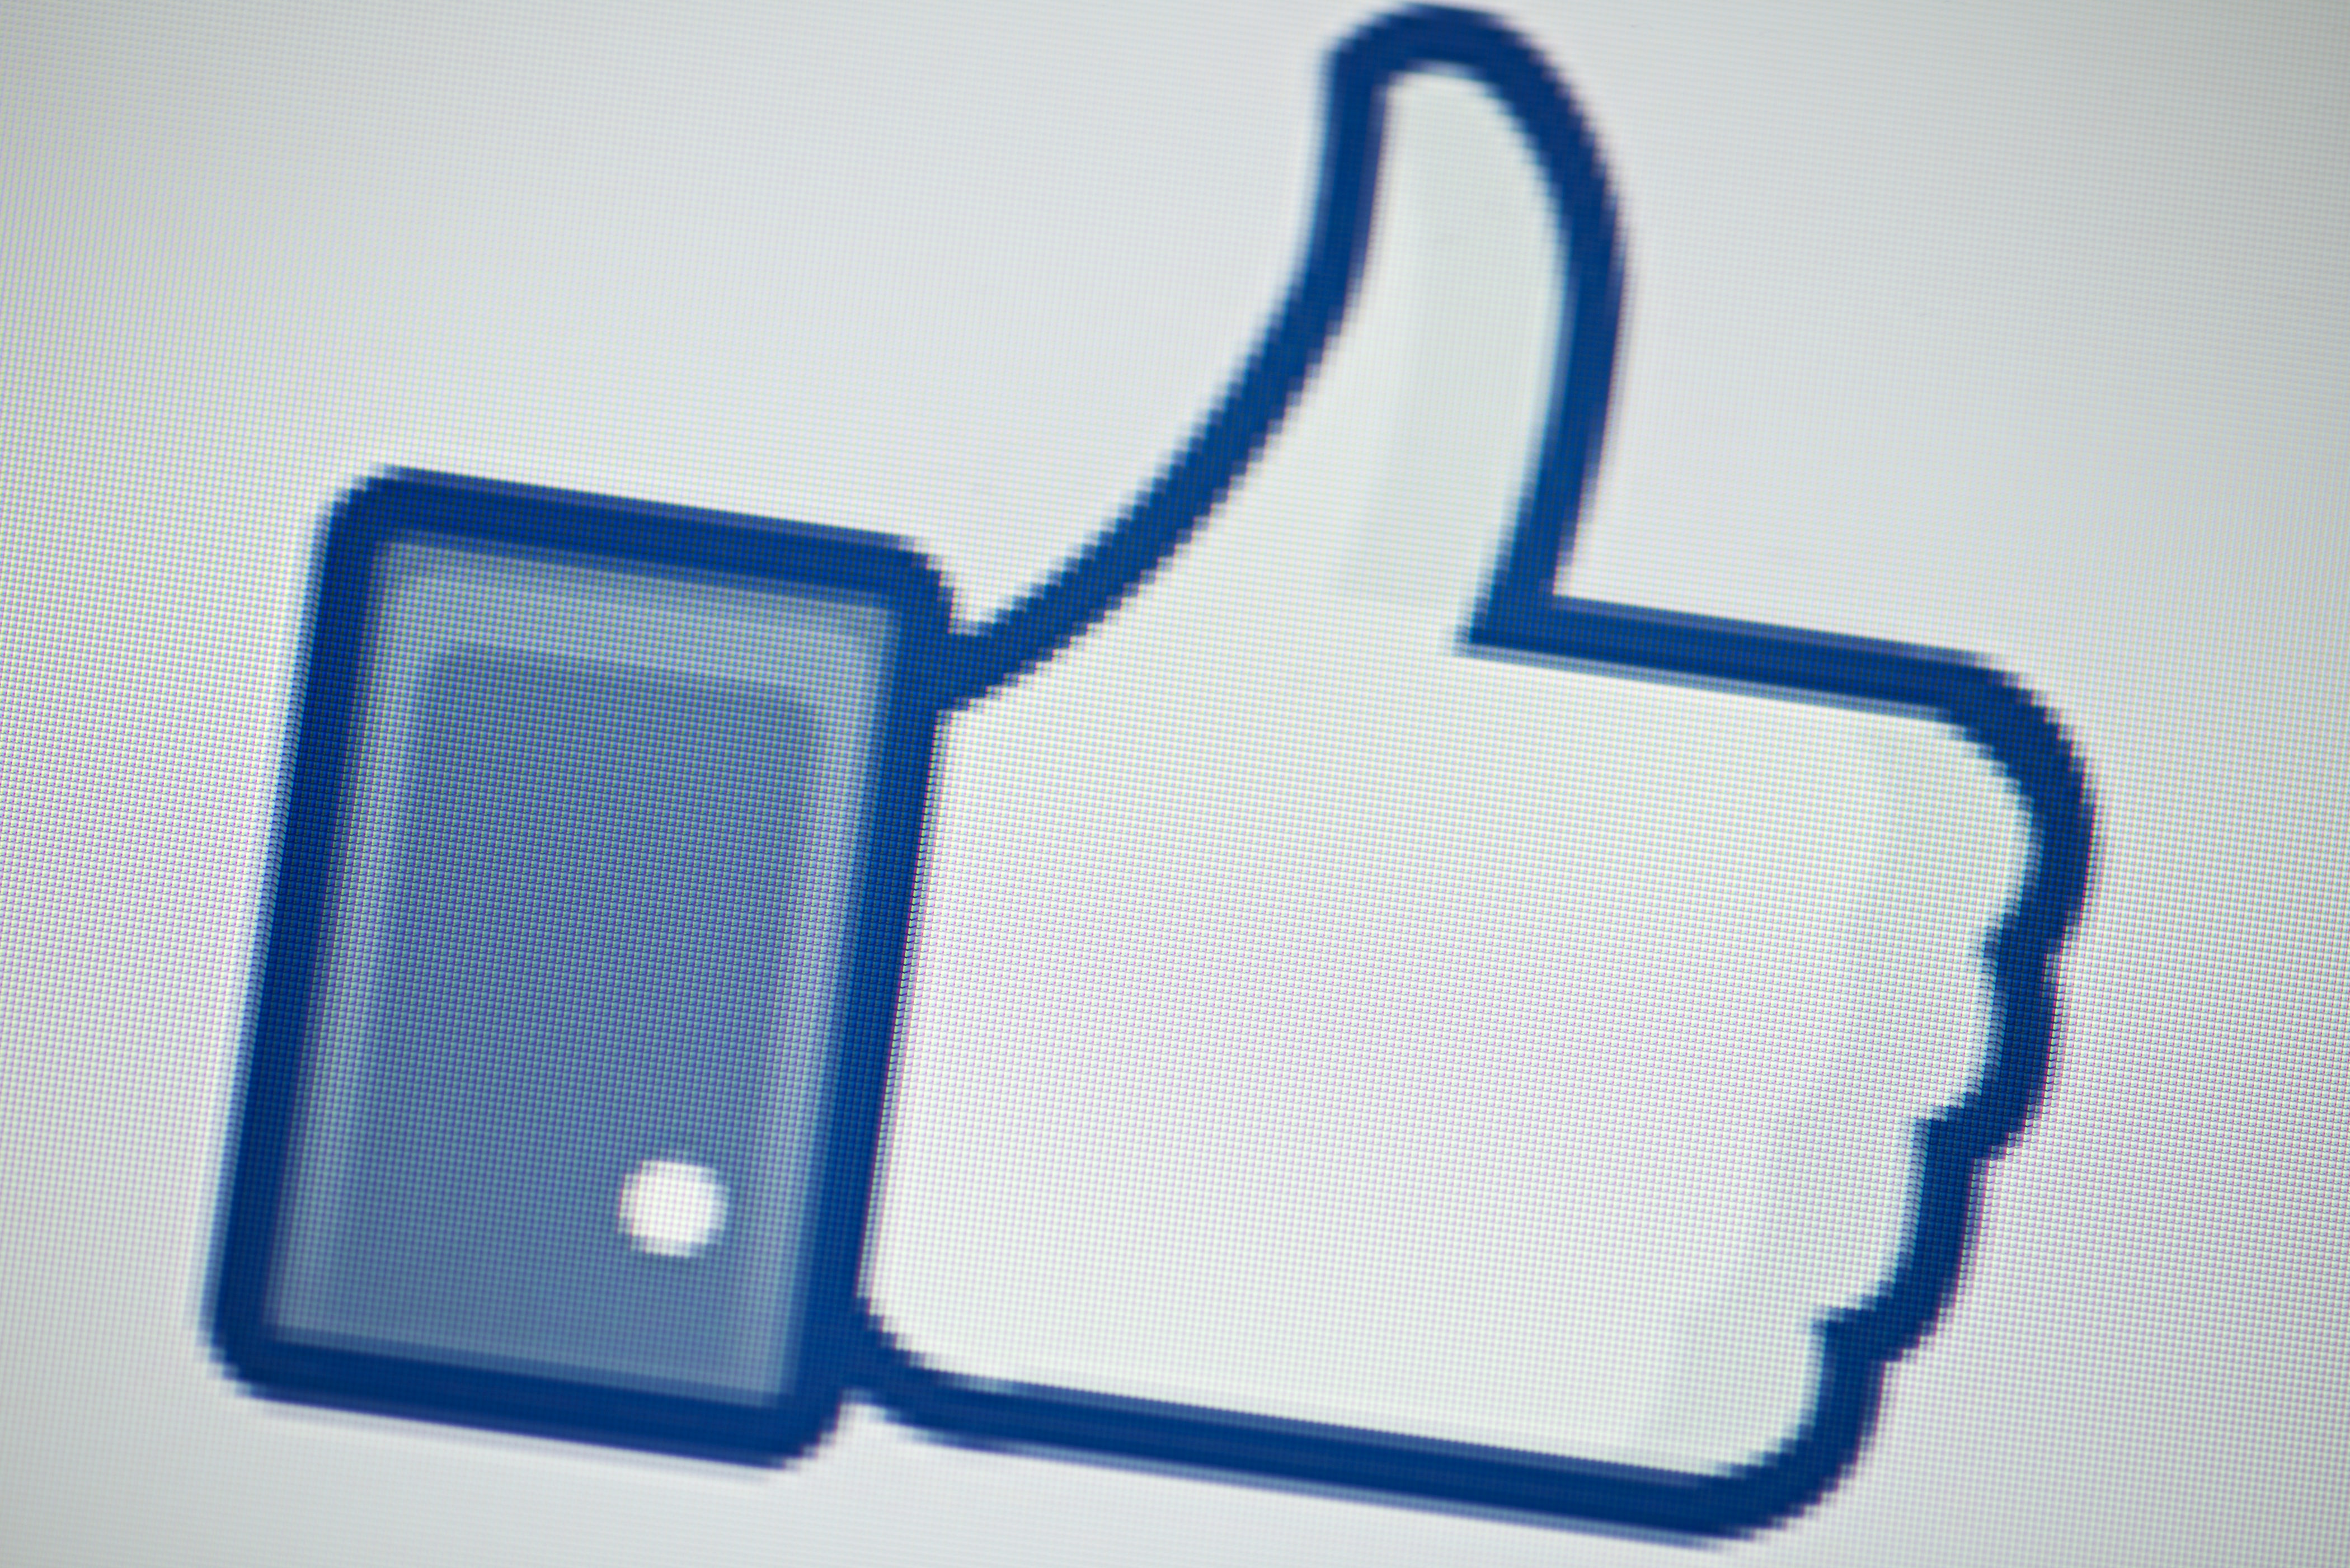 Facebook doesn't love the idea of a 'dislike' button